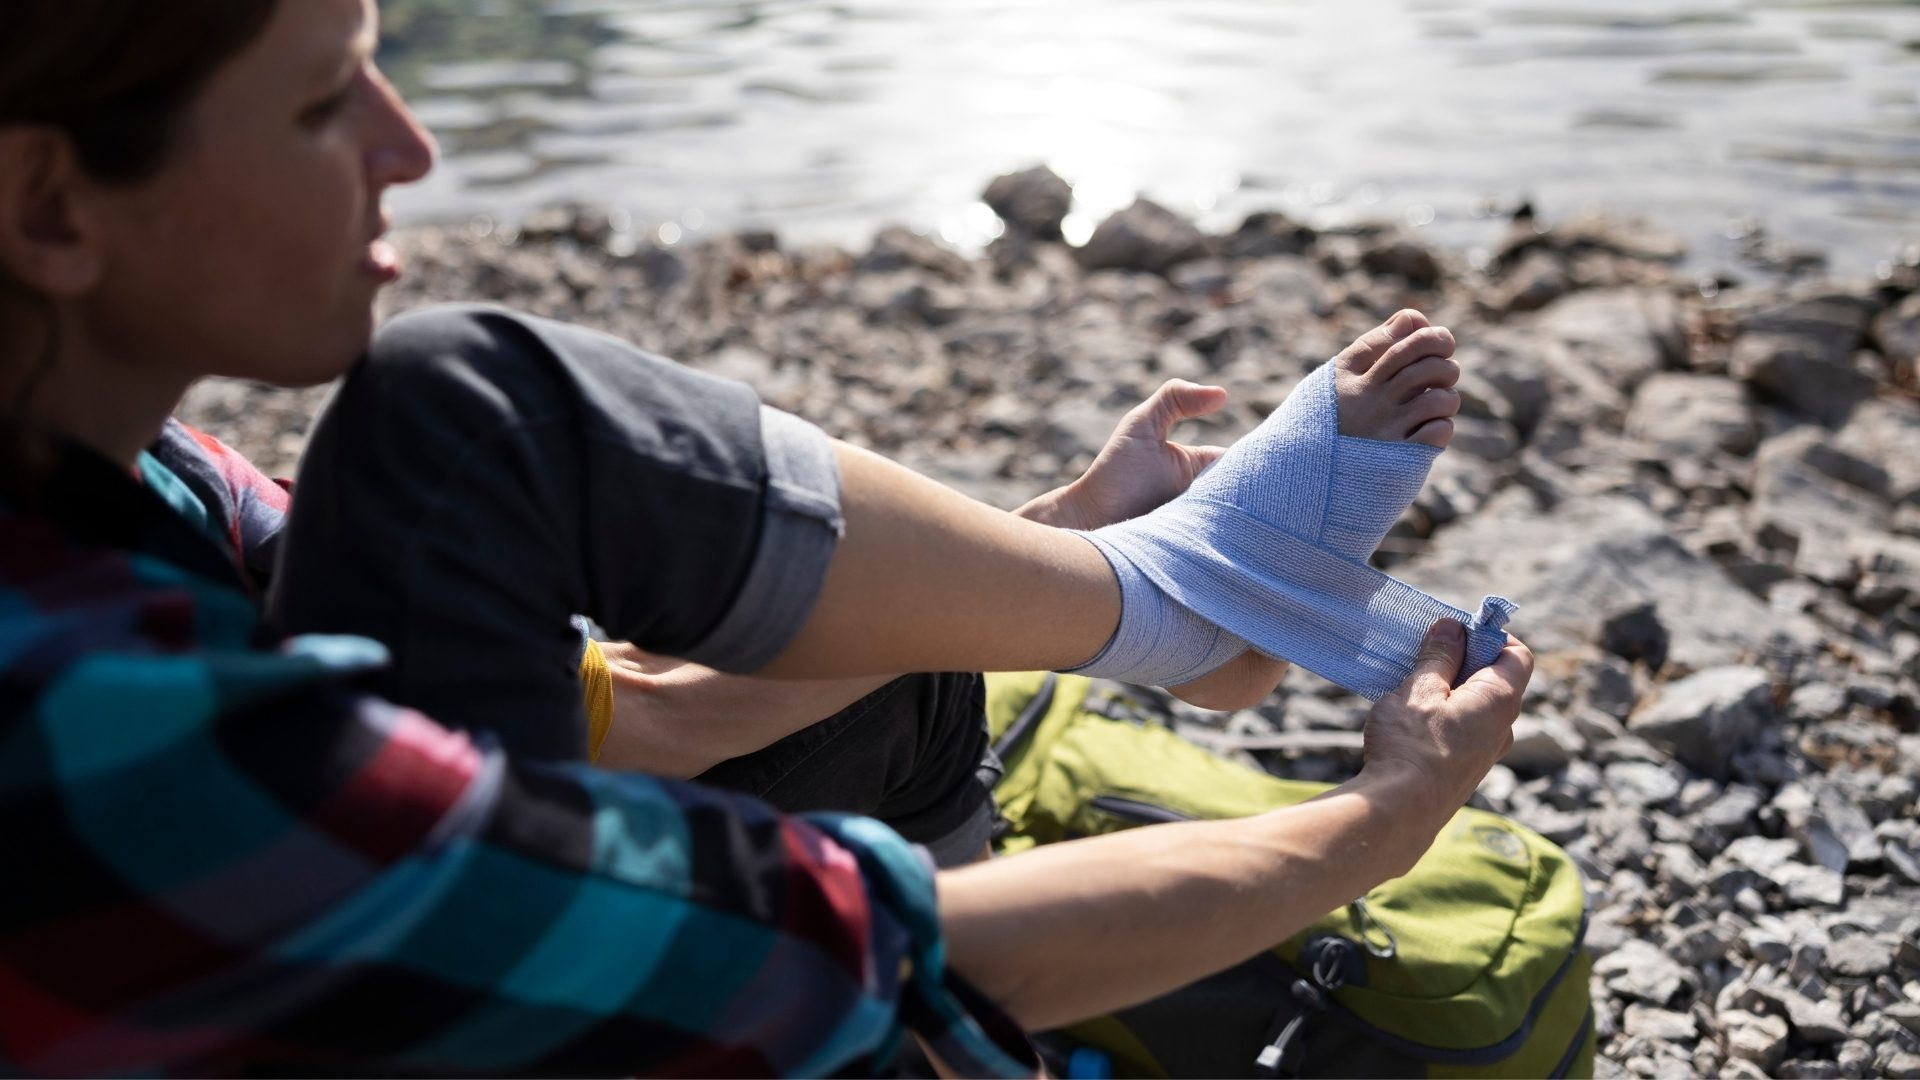 a hiker woman sitting on the ground wrapping her injured foot in a bandage